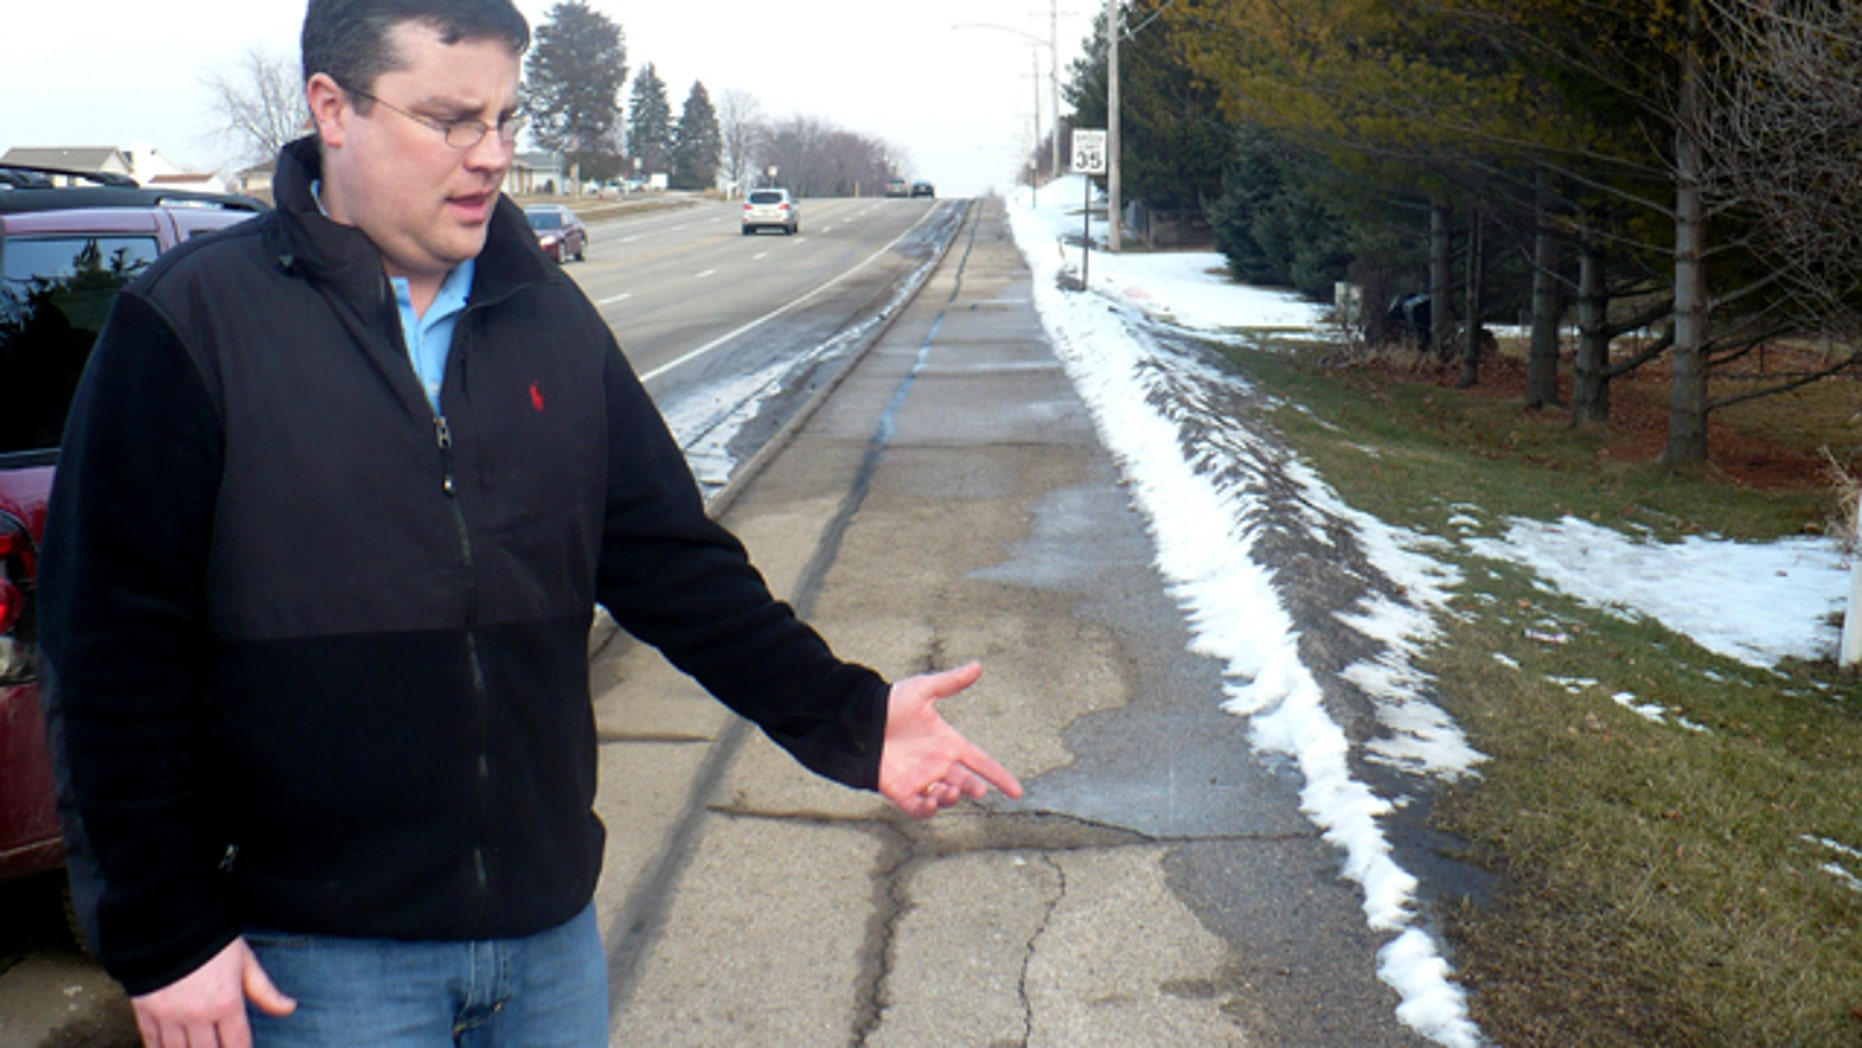 Feb. 15: Mike Vega points to the area of sidewalk where he discovered a starving 15-year-old after she escaped from her abusive father and stepmother last week.